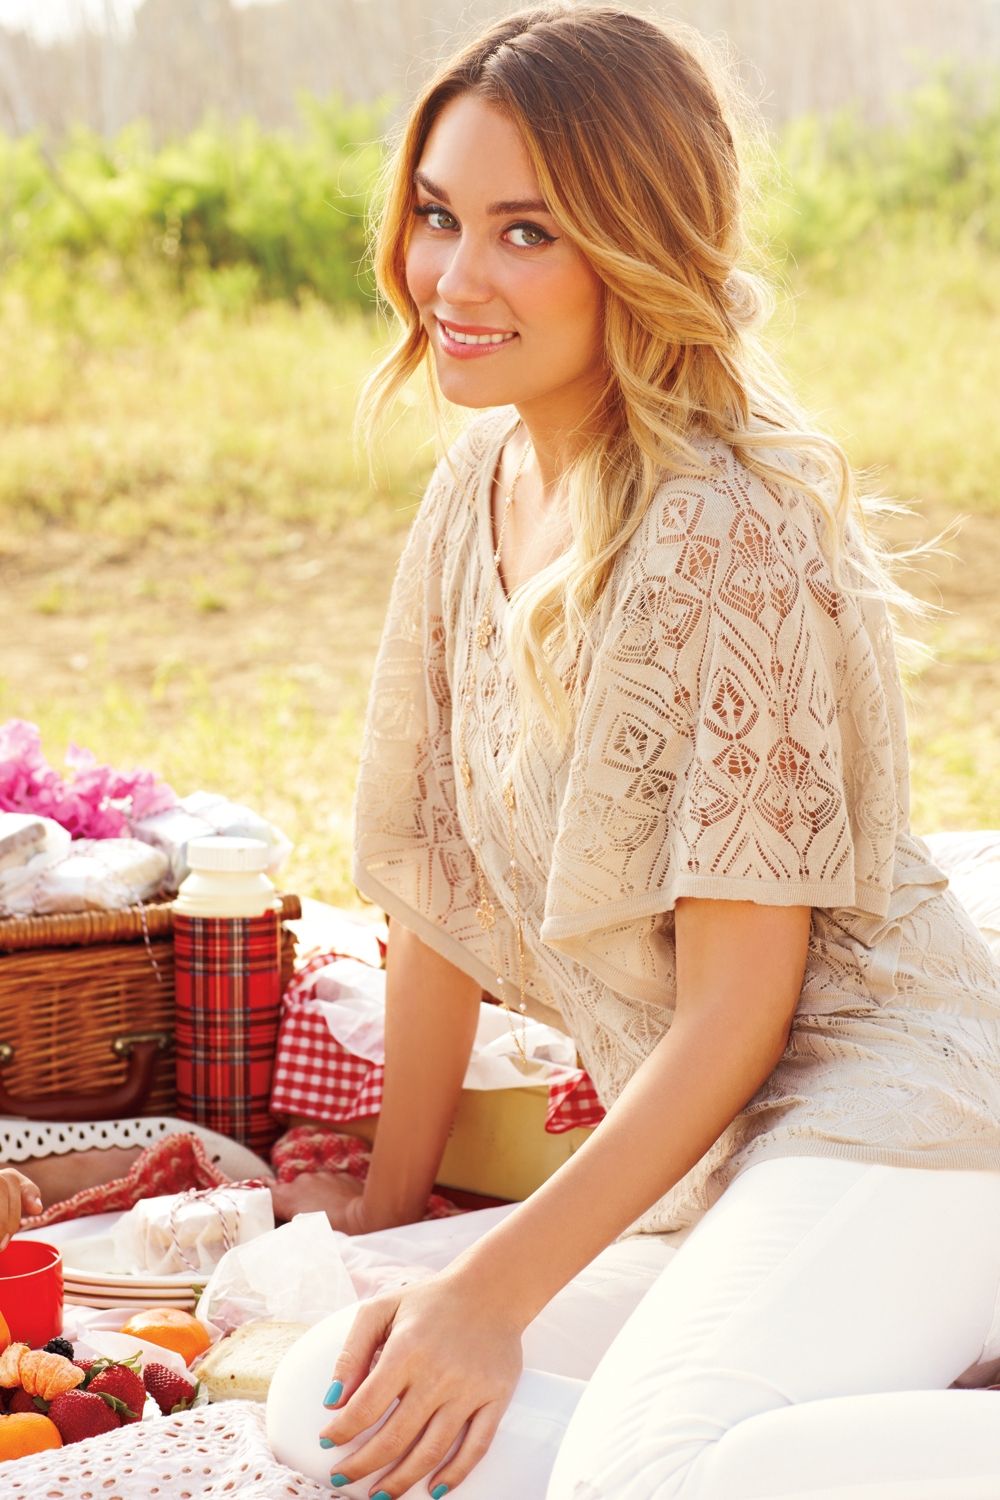 Nothing says summer romance like a flowy top and tousled